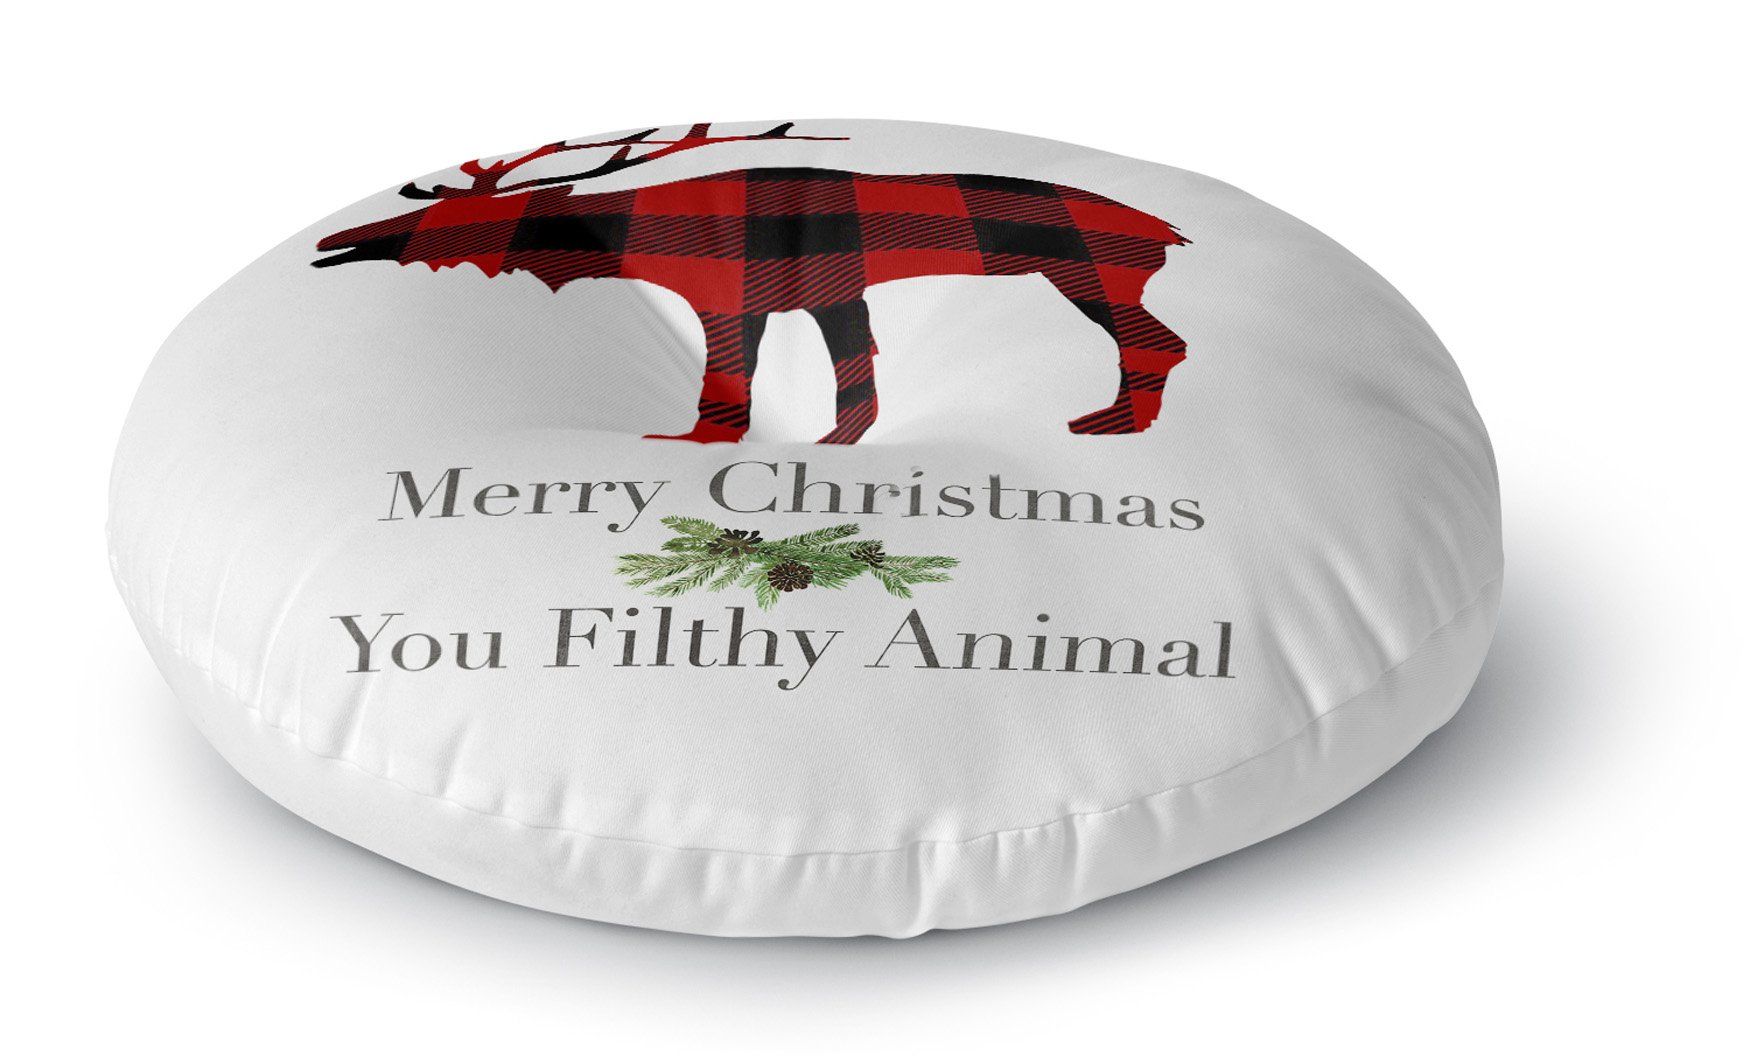 KAVKA DESIGNS Filthy Animal Floor Pillow, (Red/Black/Green/White) - TRADITIONS Collection, Size: 23x23x8 - (TELAVC1395FPR23)